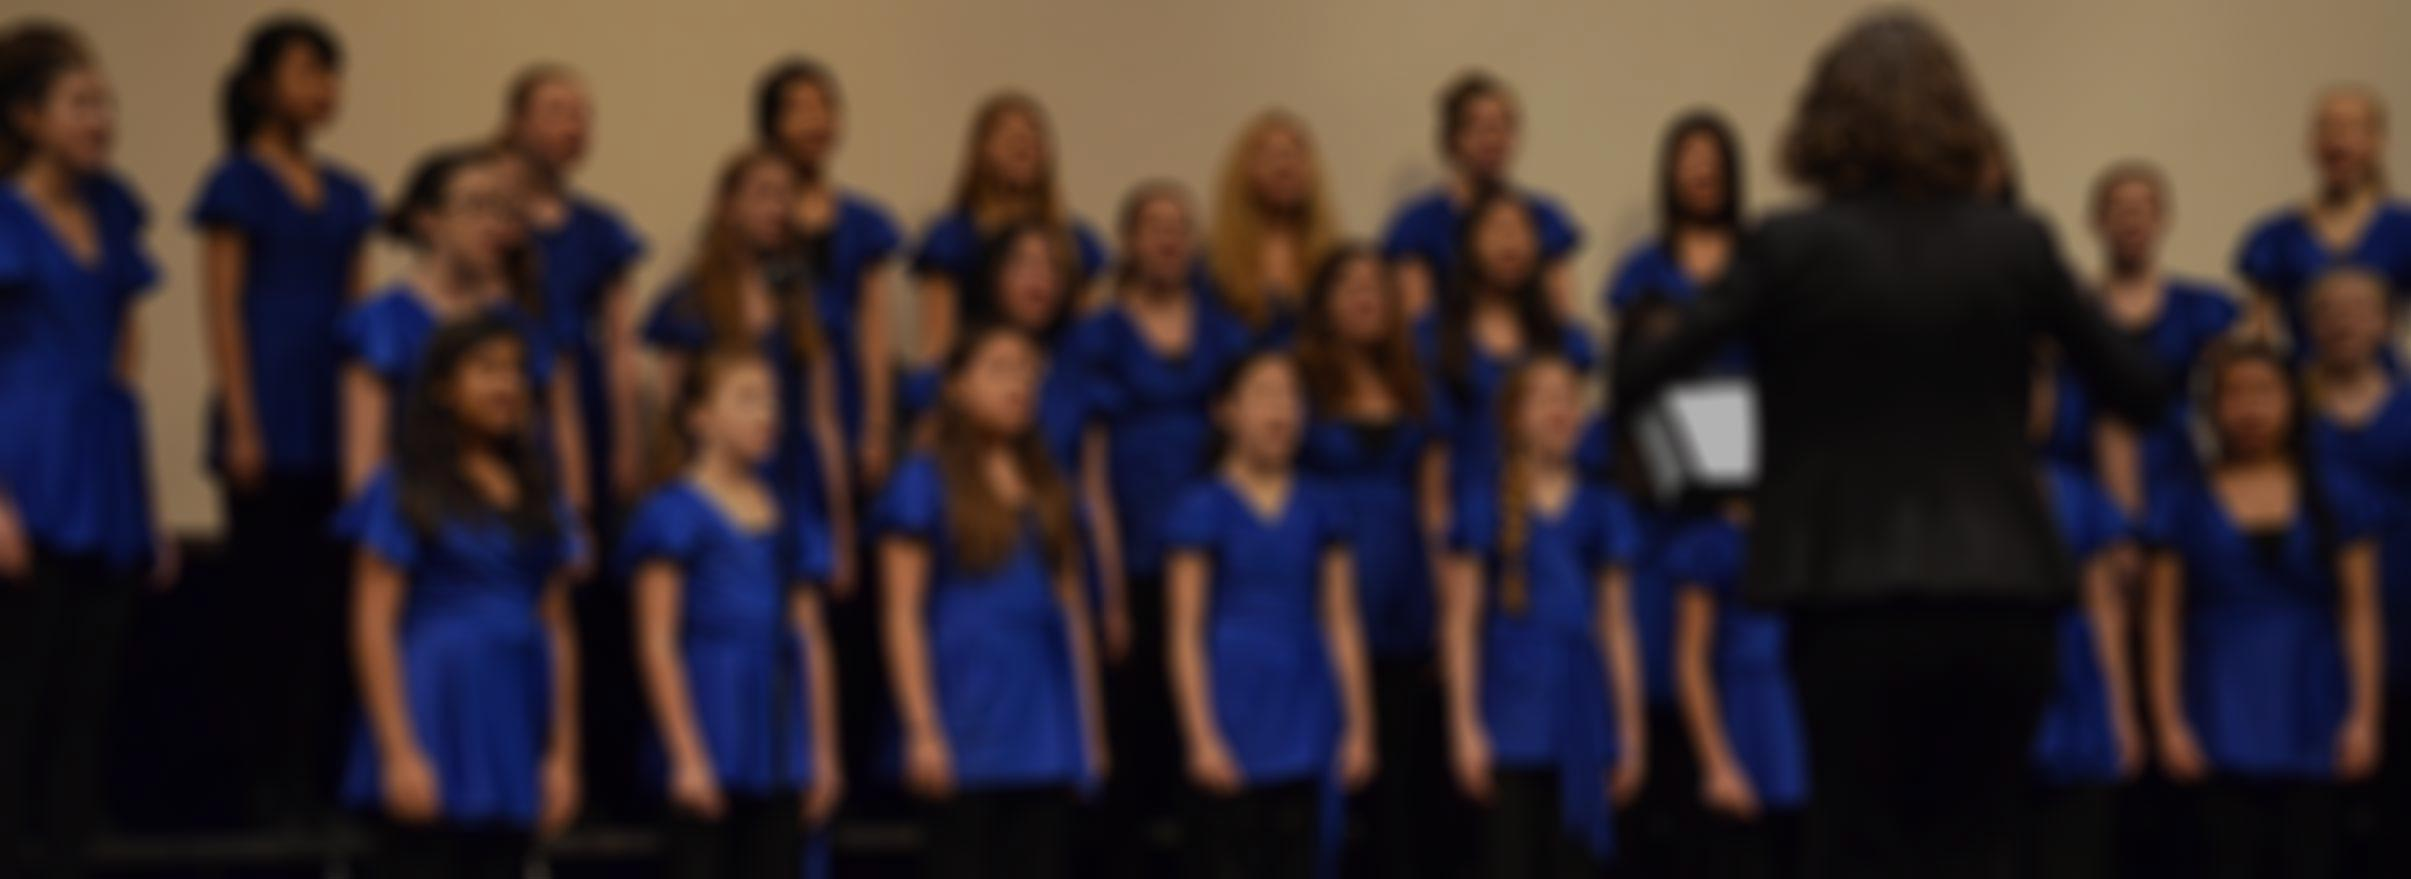 honour-choir-banner-2